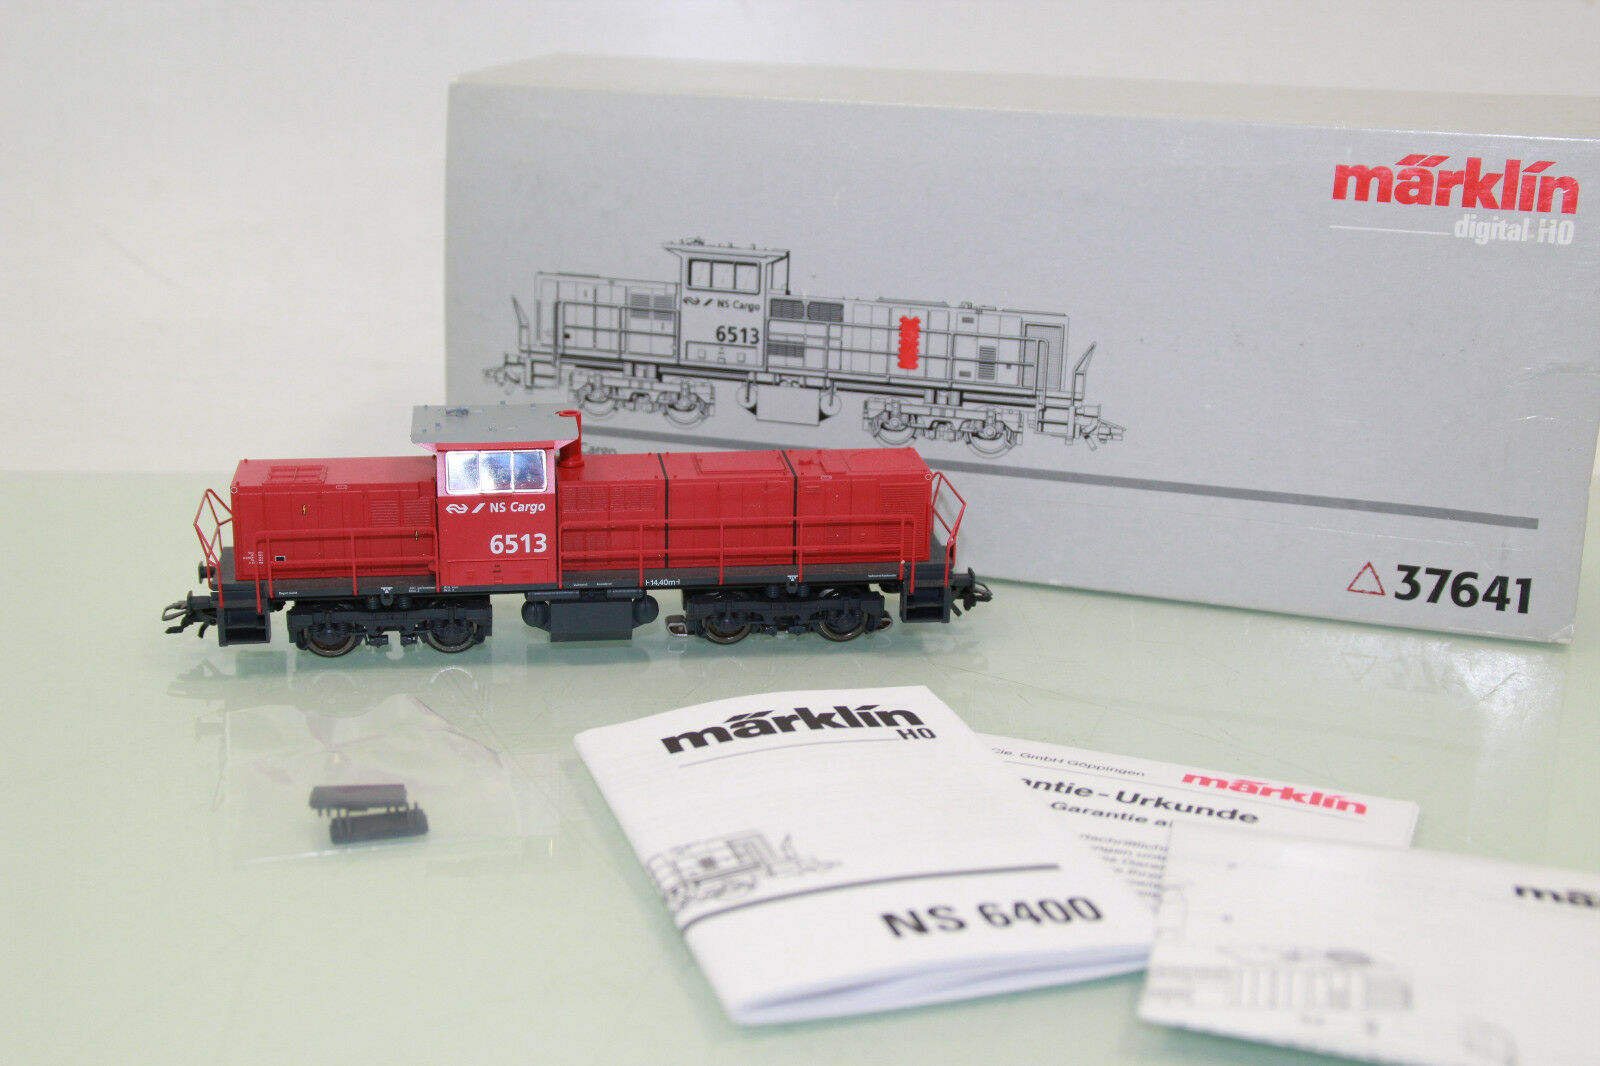 pista h0 37641 DIESEL SERIE 6400 di NS Cargo DIGITAL in scatola originale  nl1036